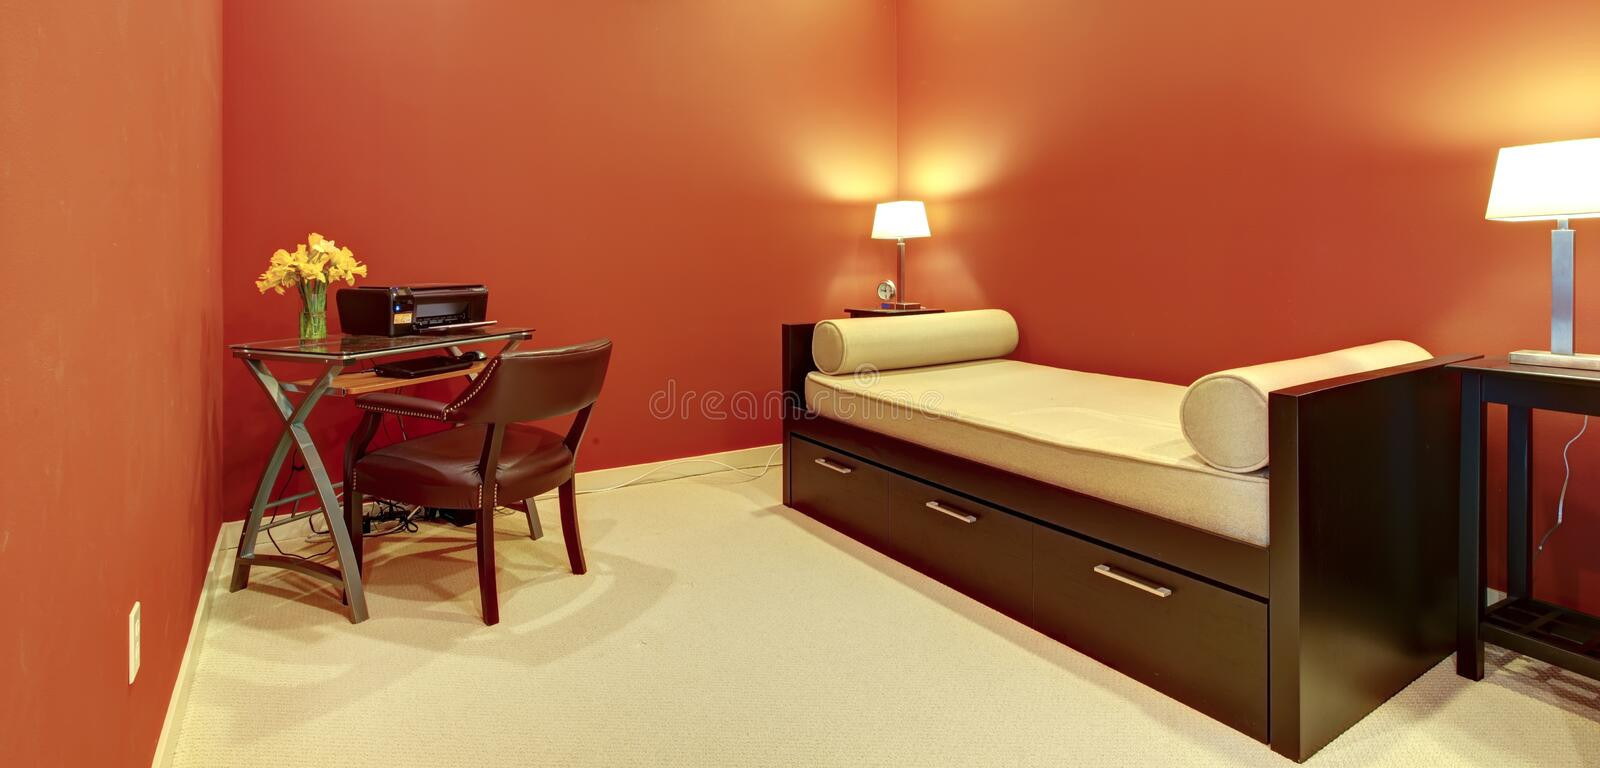 Download Red Room With Sofa Bed And Office Desk. Stock Photo - Image: 28840752